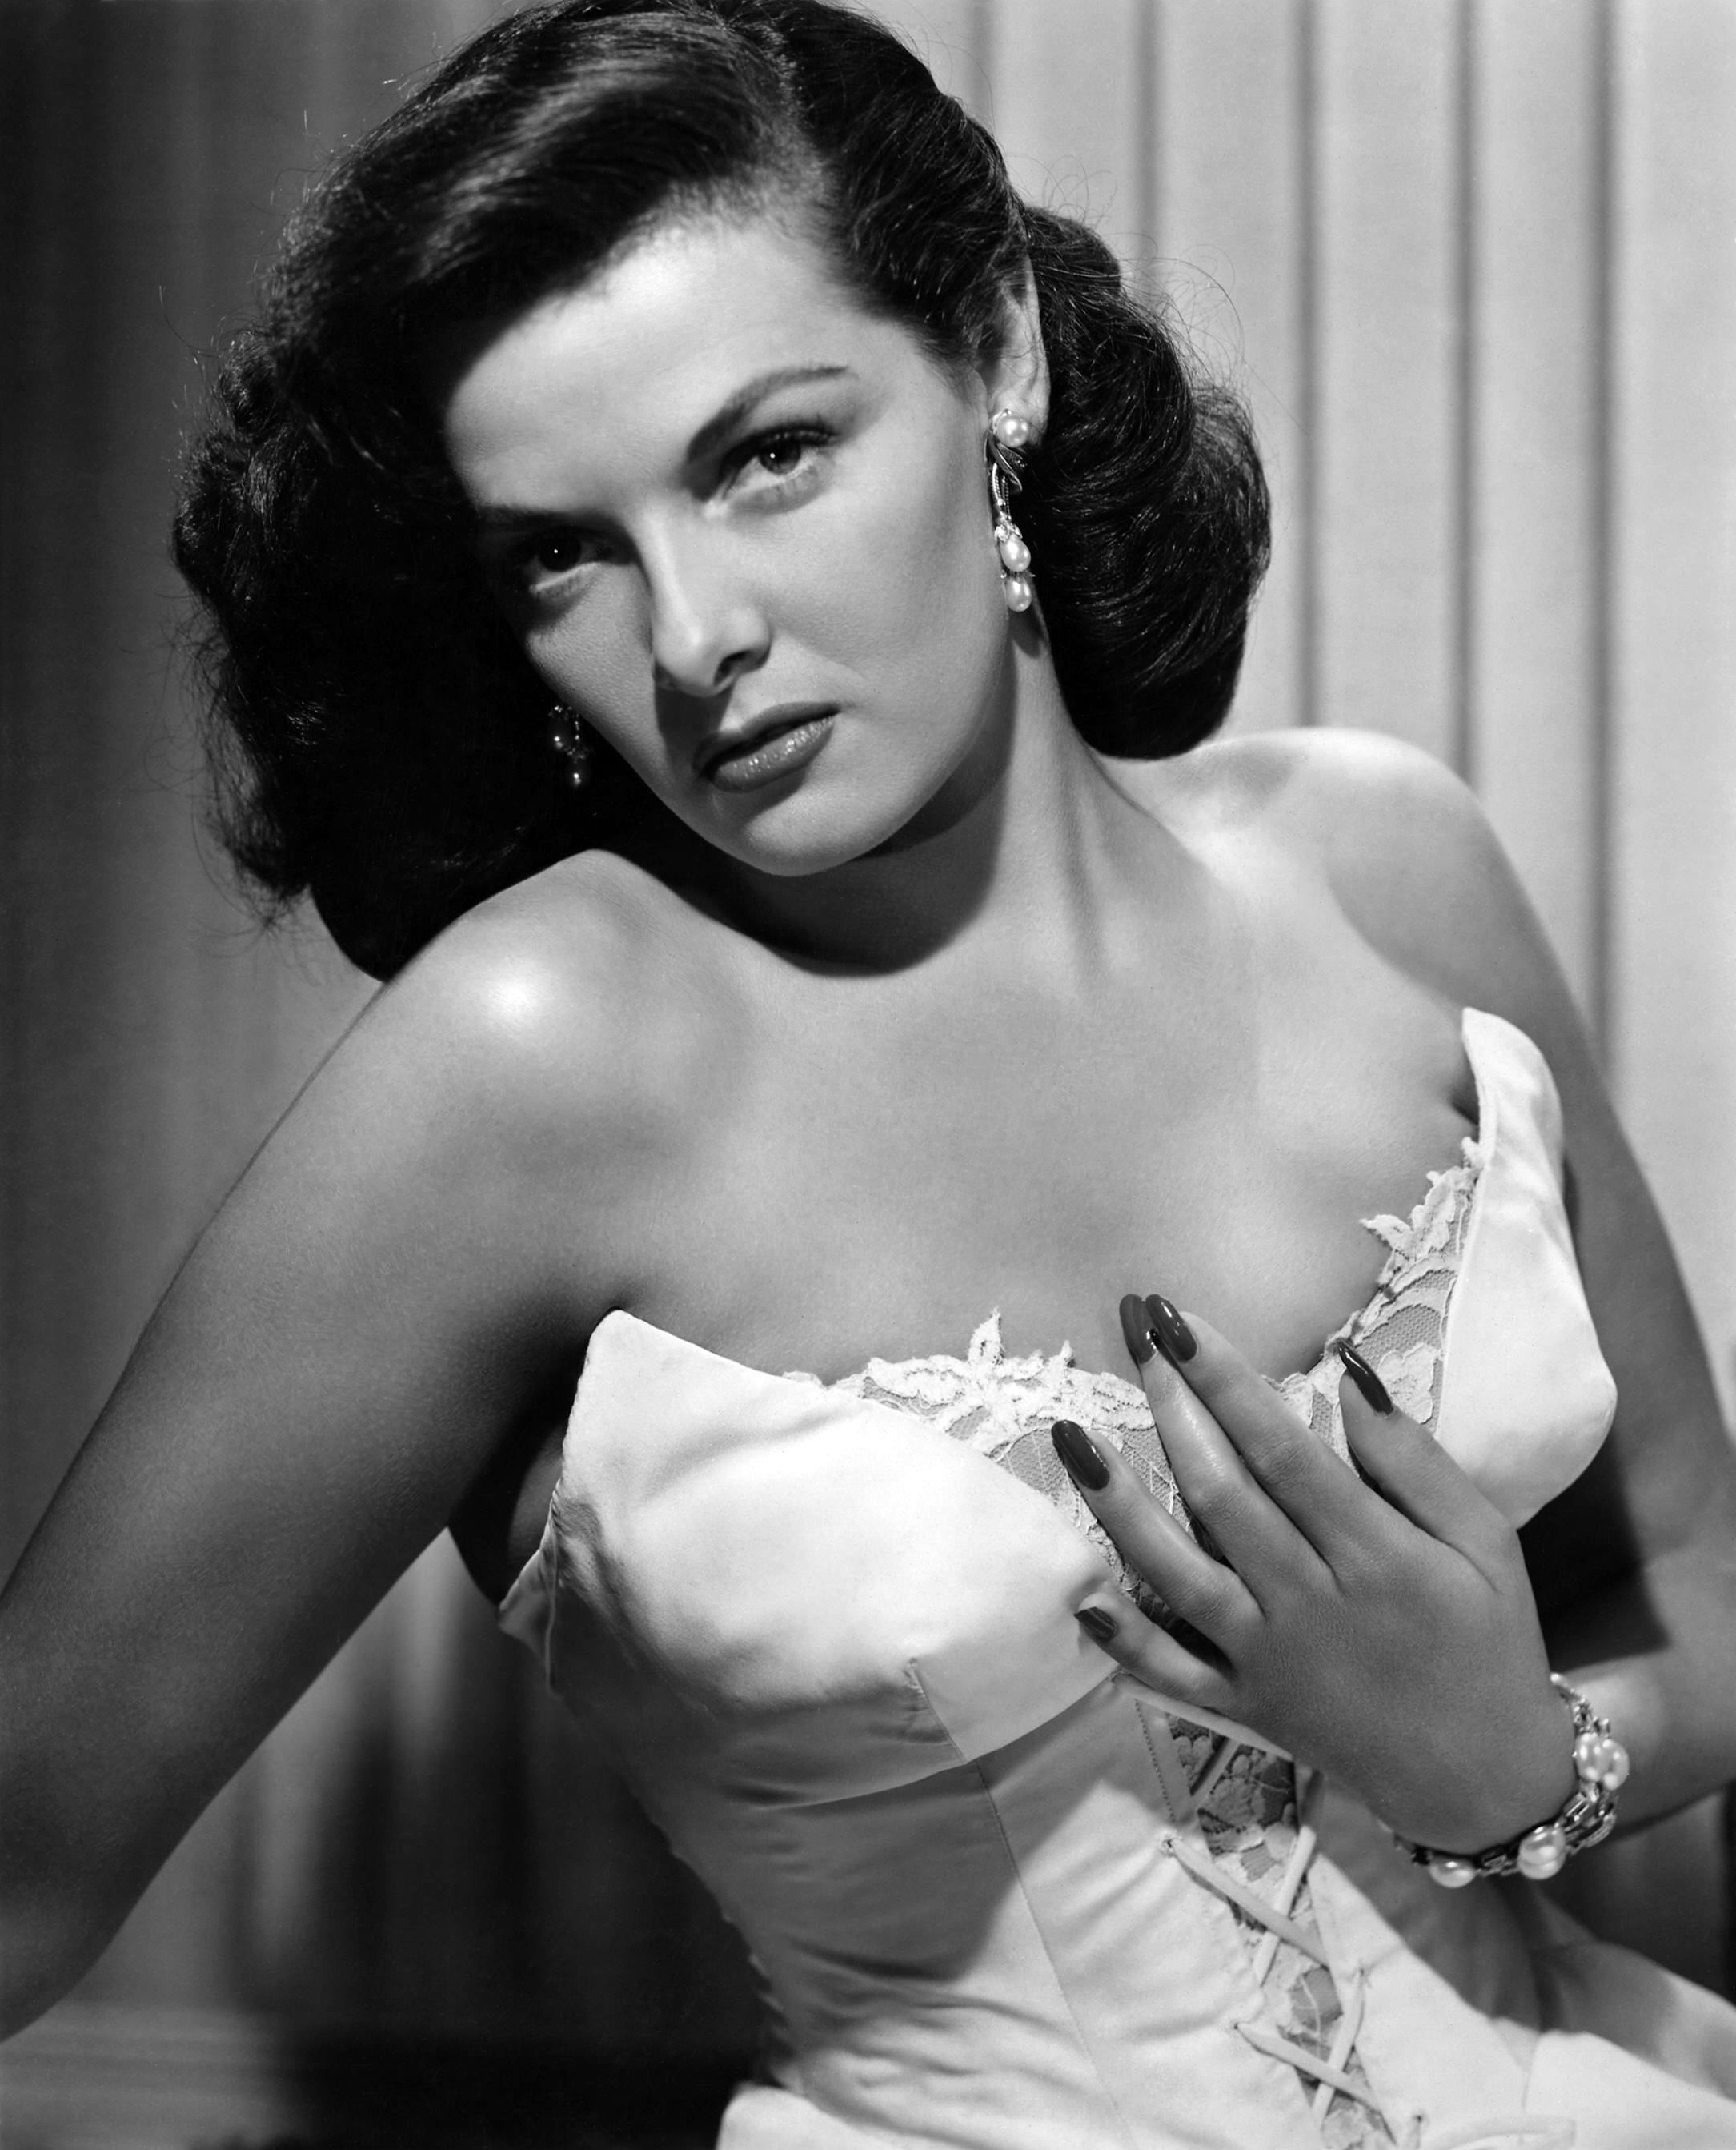 jane russell oldjane russell marilyn monroe, jane russell kibbe, jane russell the outlaw poster, jane russell last photo, jane russell 2011, jane russell autobiography, jane russell interview about marilyn monroe, jane russell wikipedia, jane russell, jane russell photos, jane russell quotes, jane russell imdb, jane russell wiki, jane russell old, jane russell adoption ireland, jane russell gentlemen prefer blondes, jane russell underwater, jane russell youtube, jane russell marilyn monroe movie, jane russell adoption